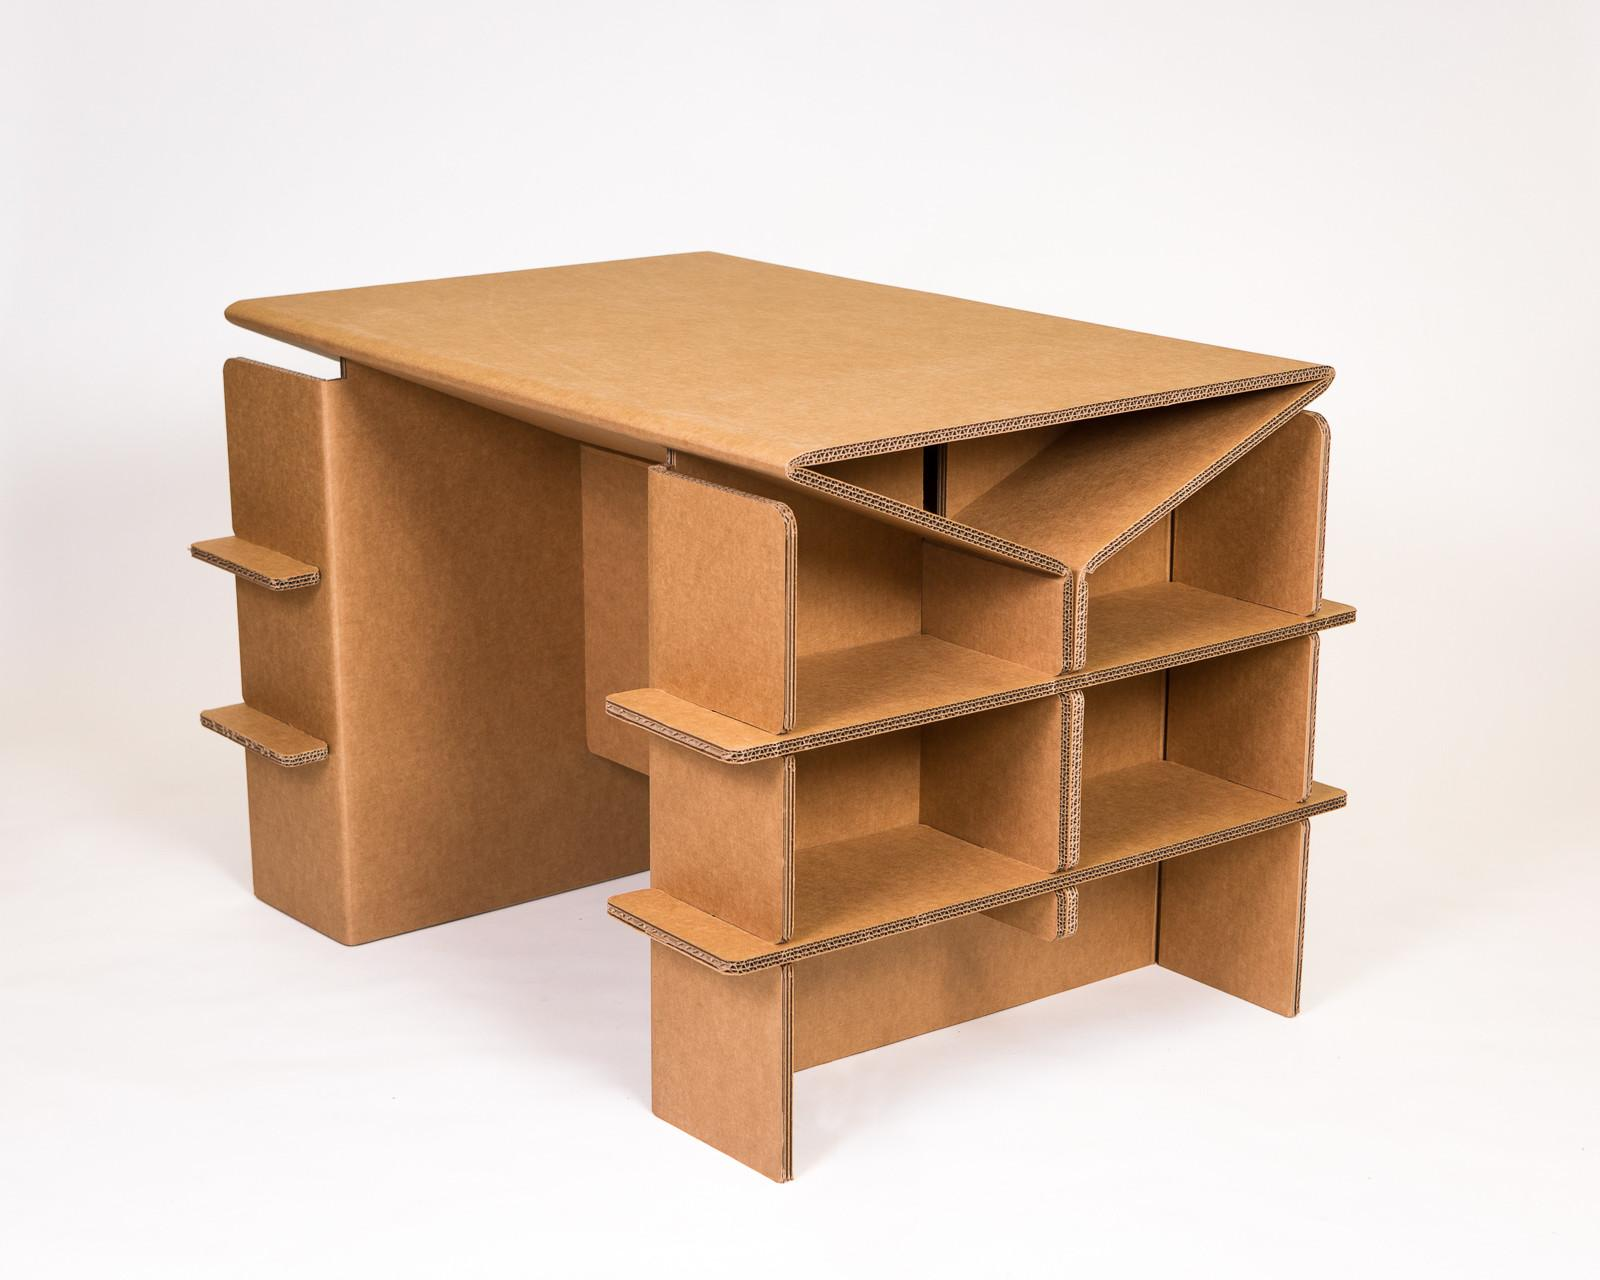 Cardboard Arts Crafts Desk Shipping Chairigami